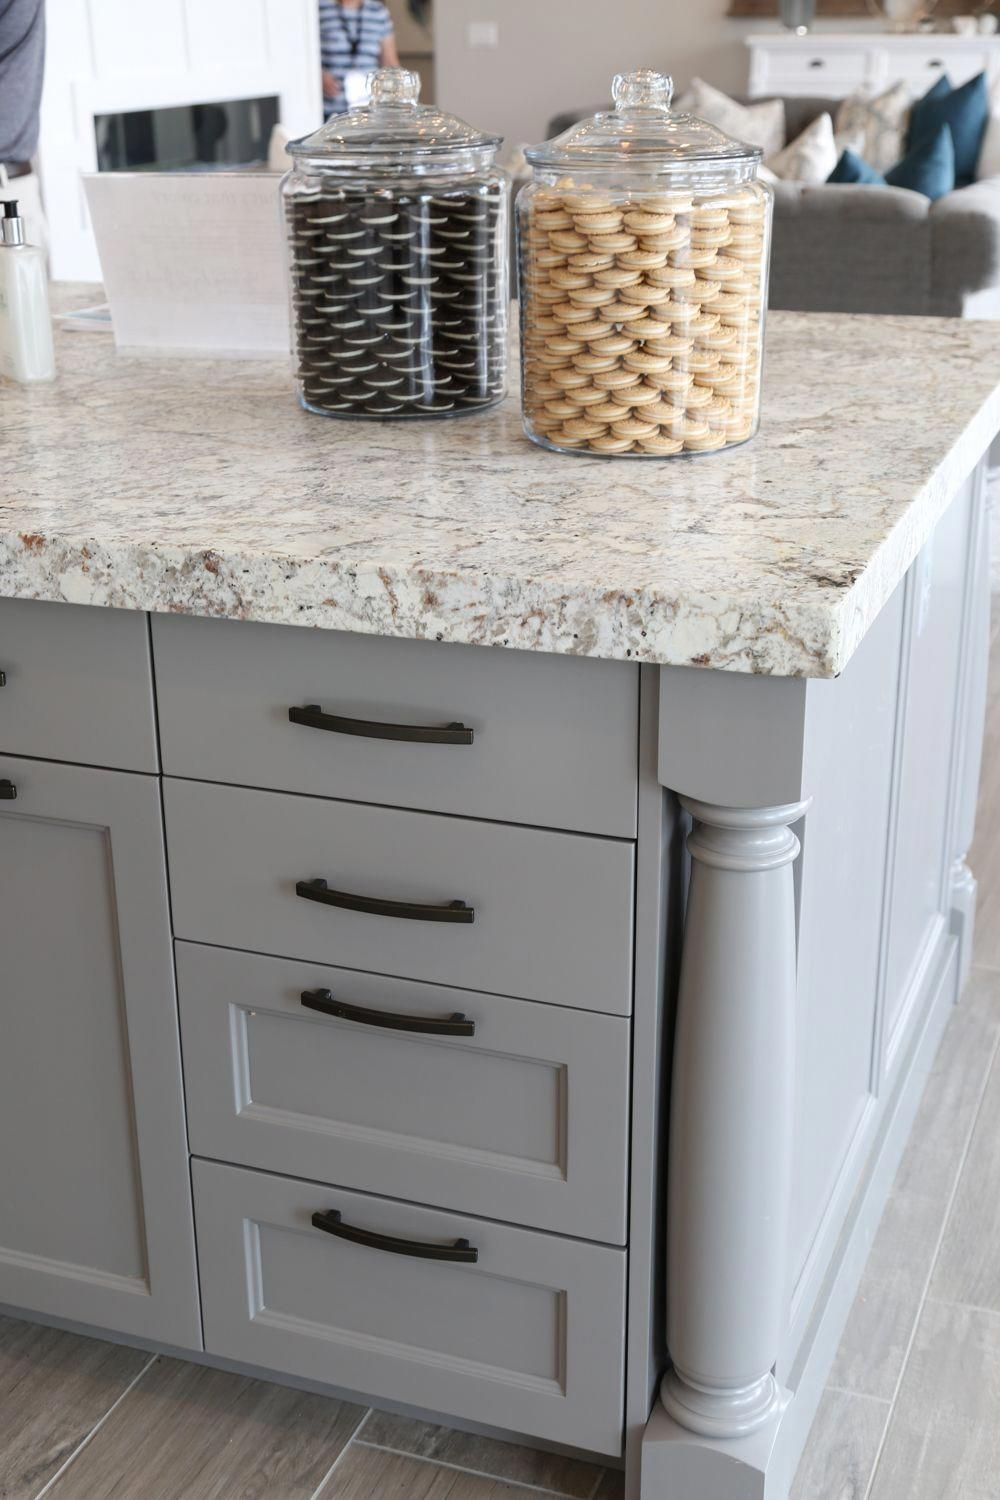 Admiring Granite Kitchen Countertops Ideas That You Shouldnt Miss32